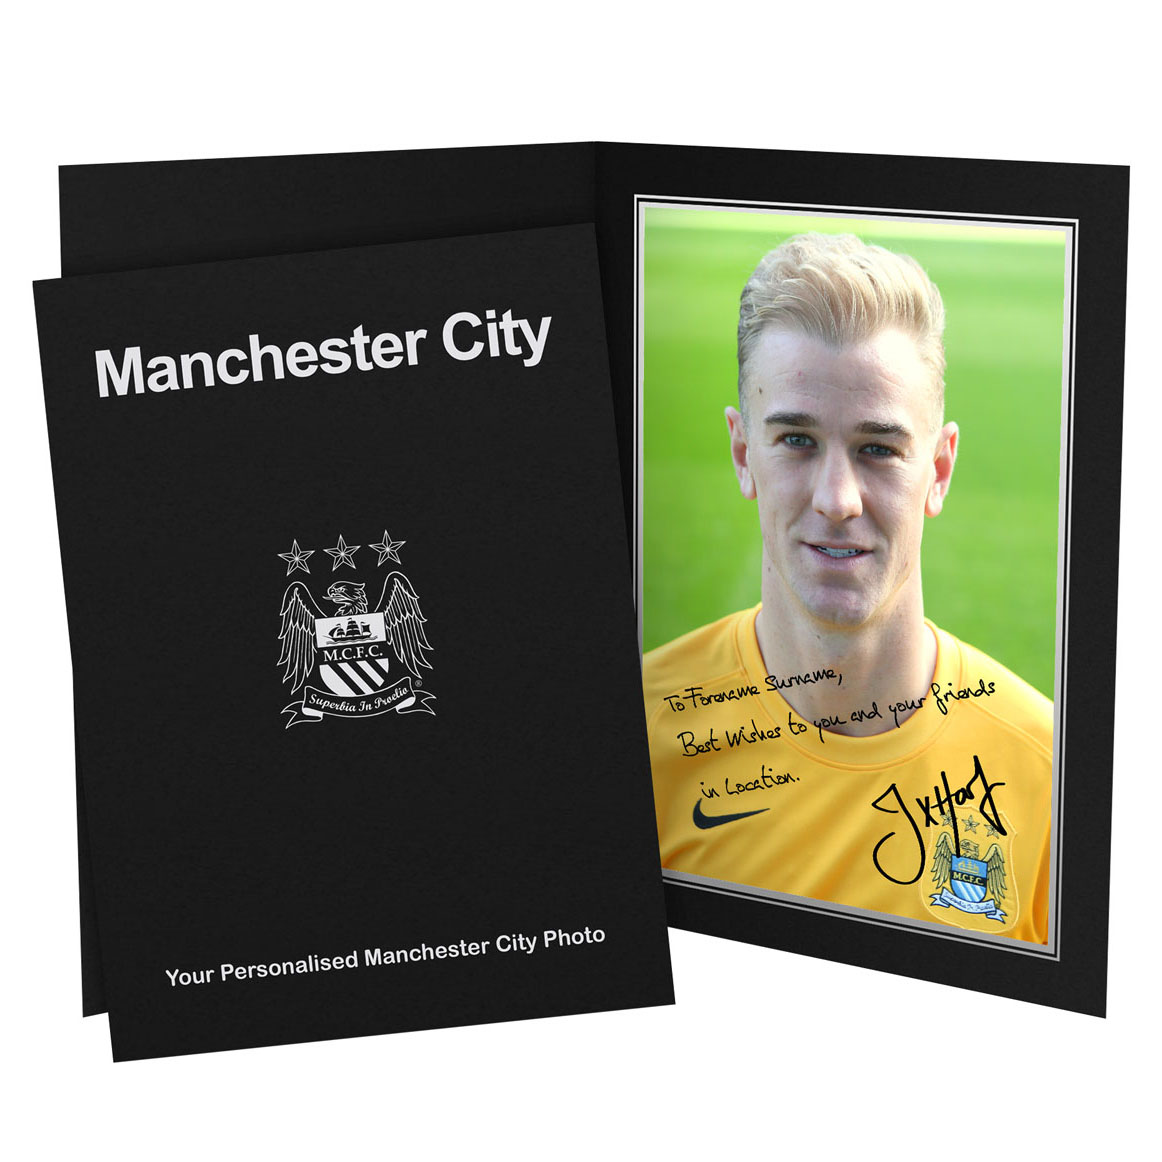 Manchester City Personalised Signature Photo in Presentation Folder - Hart